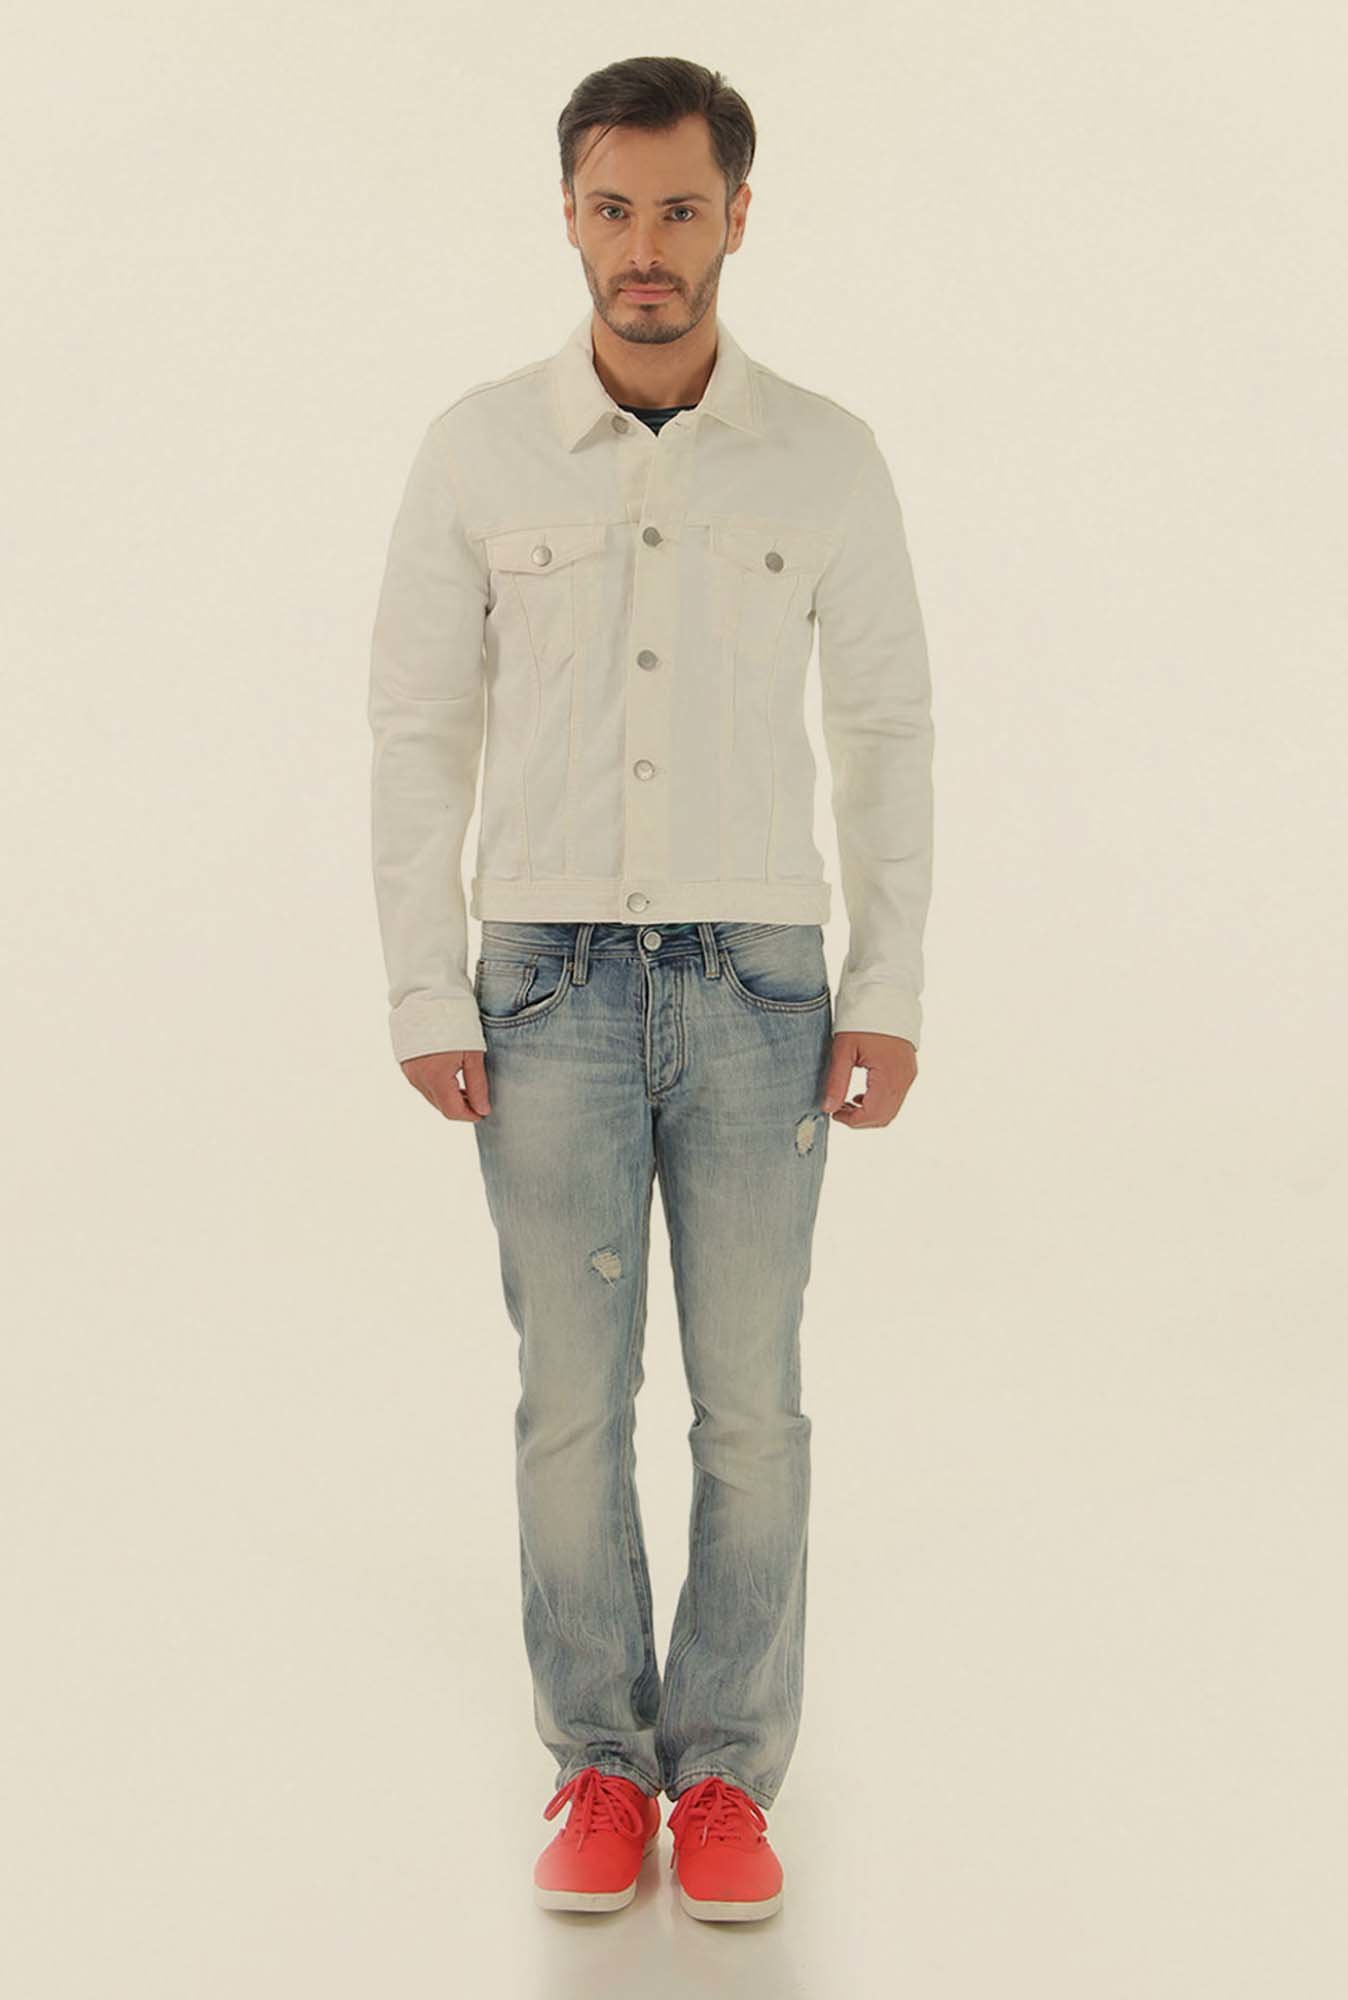 Jack & Jones White Slim Fit Casual Jacket